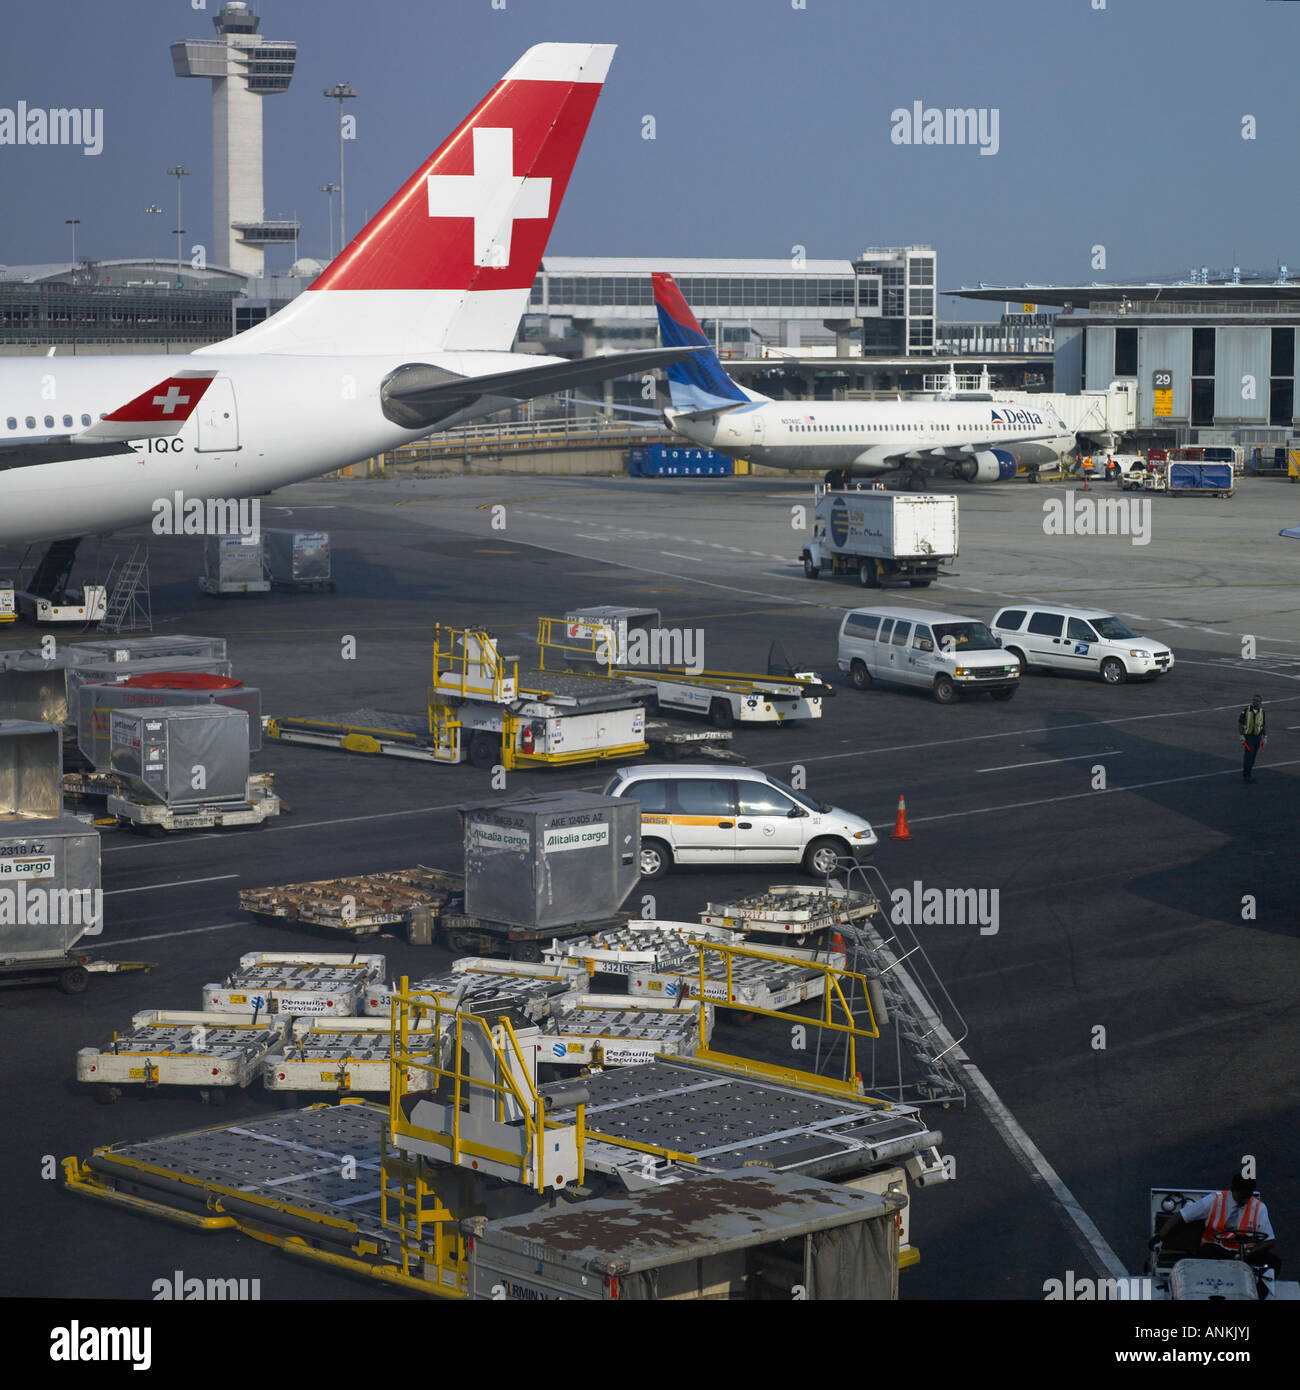 Departure terminal view at large airport - Stock Image